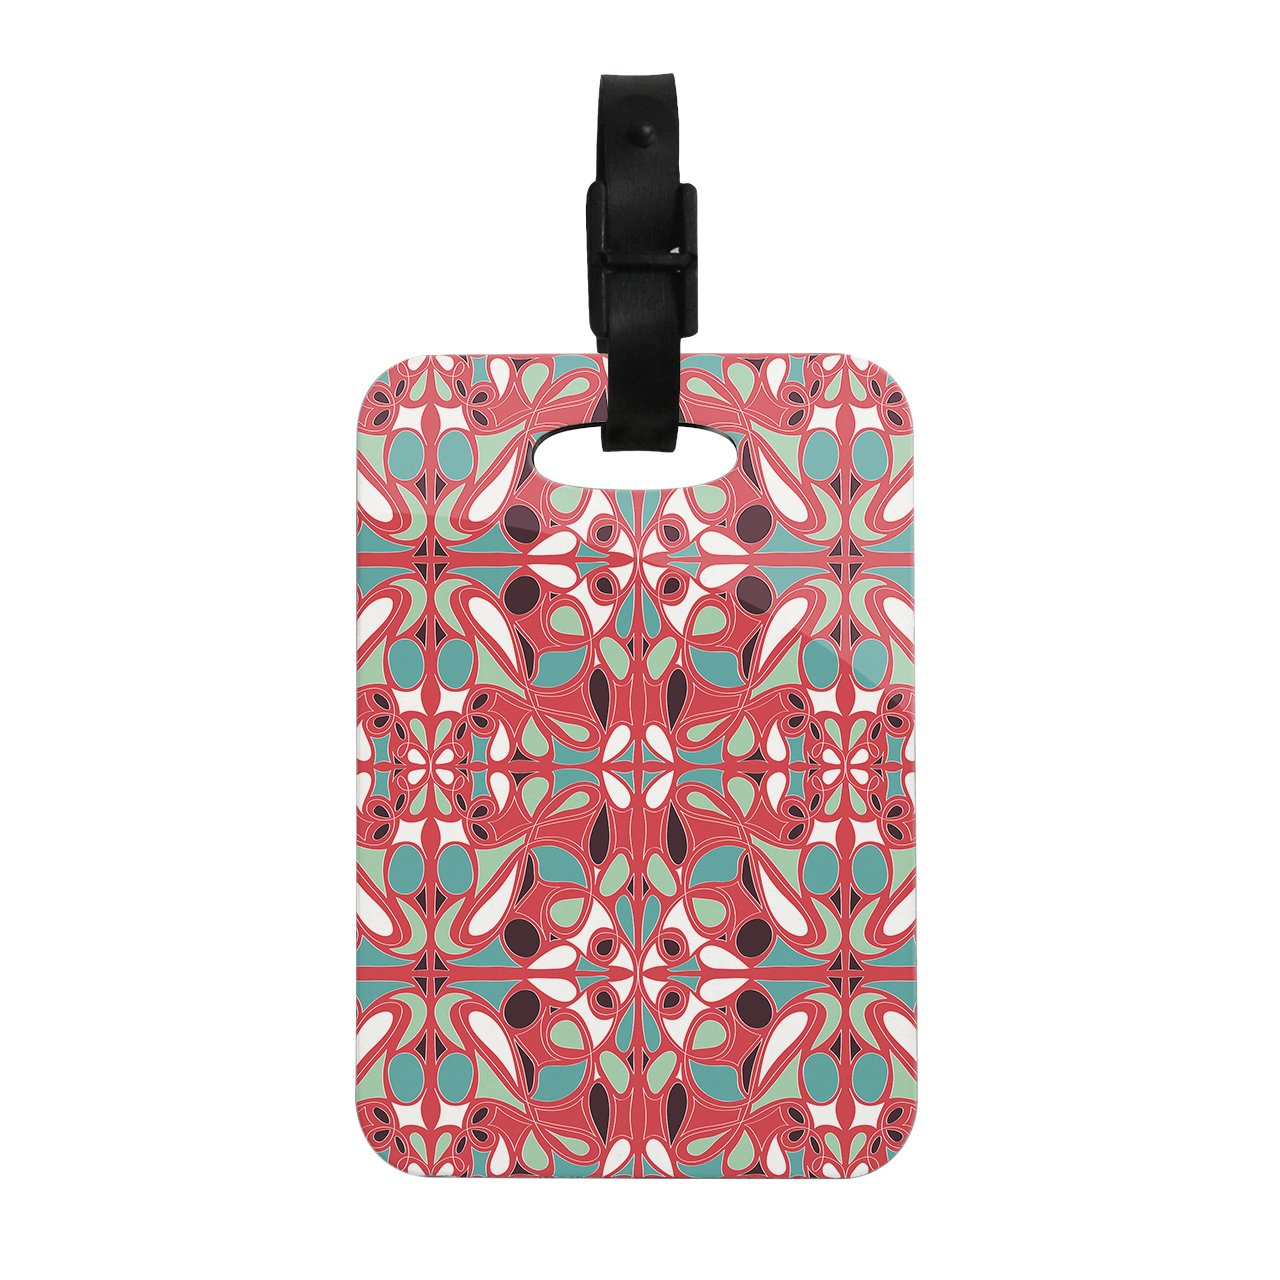 Kess InHouse Miranda Mol Stained Glass Pink Decorative Luggage Tag, 4 by 4-Inch